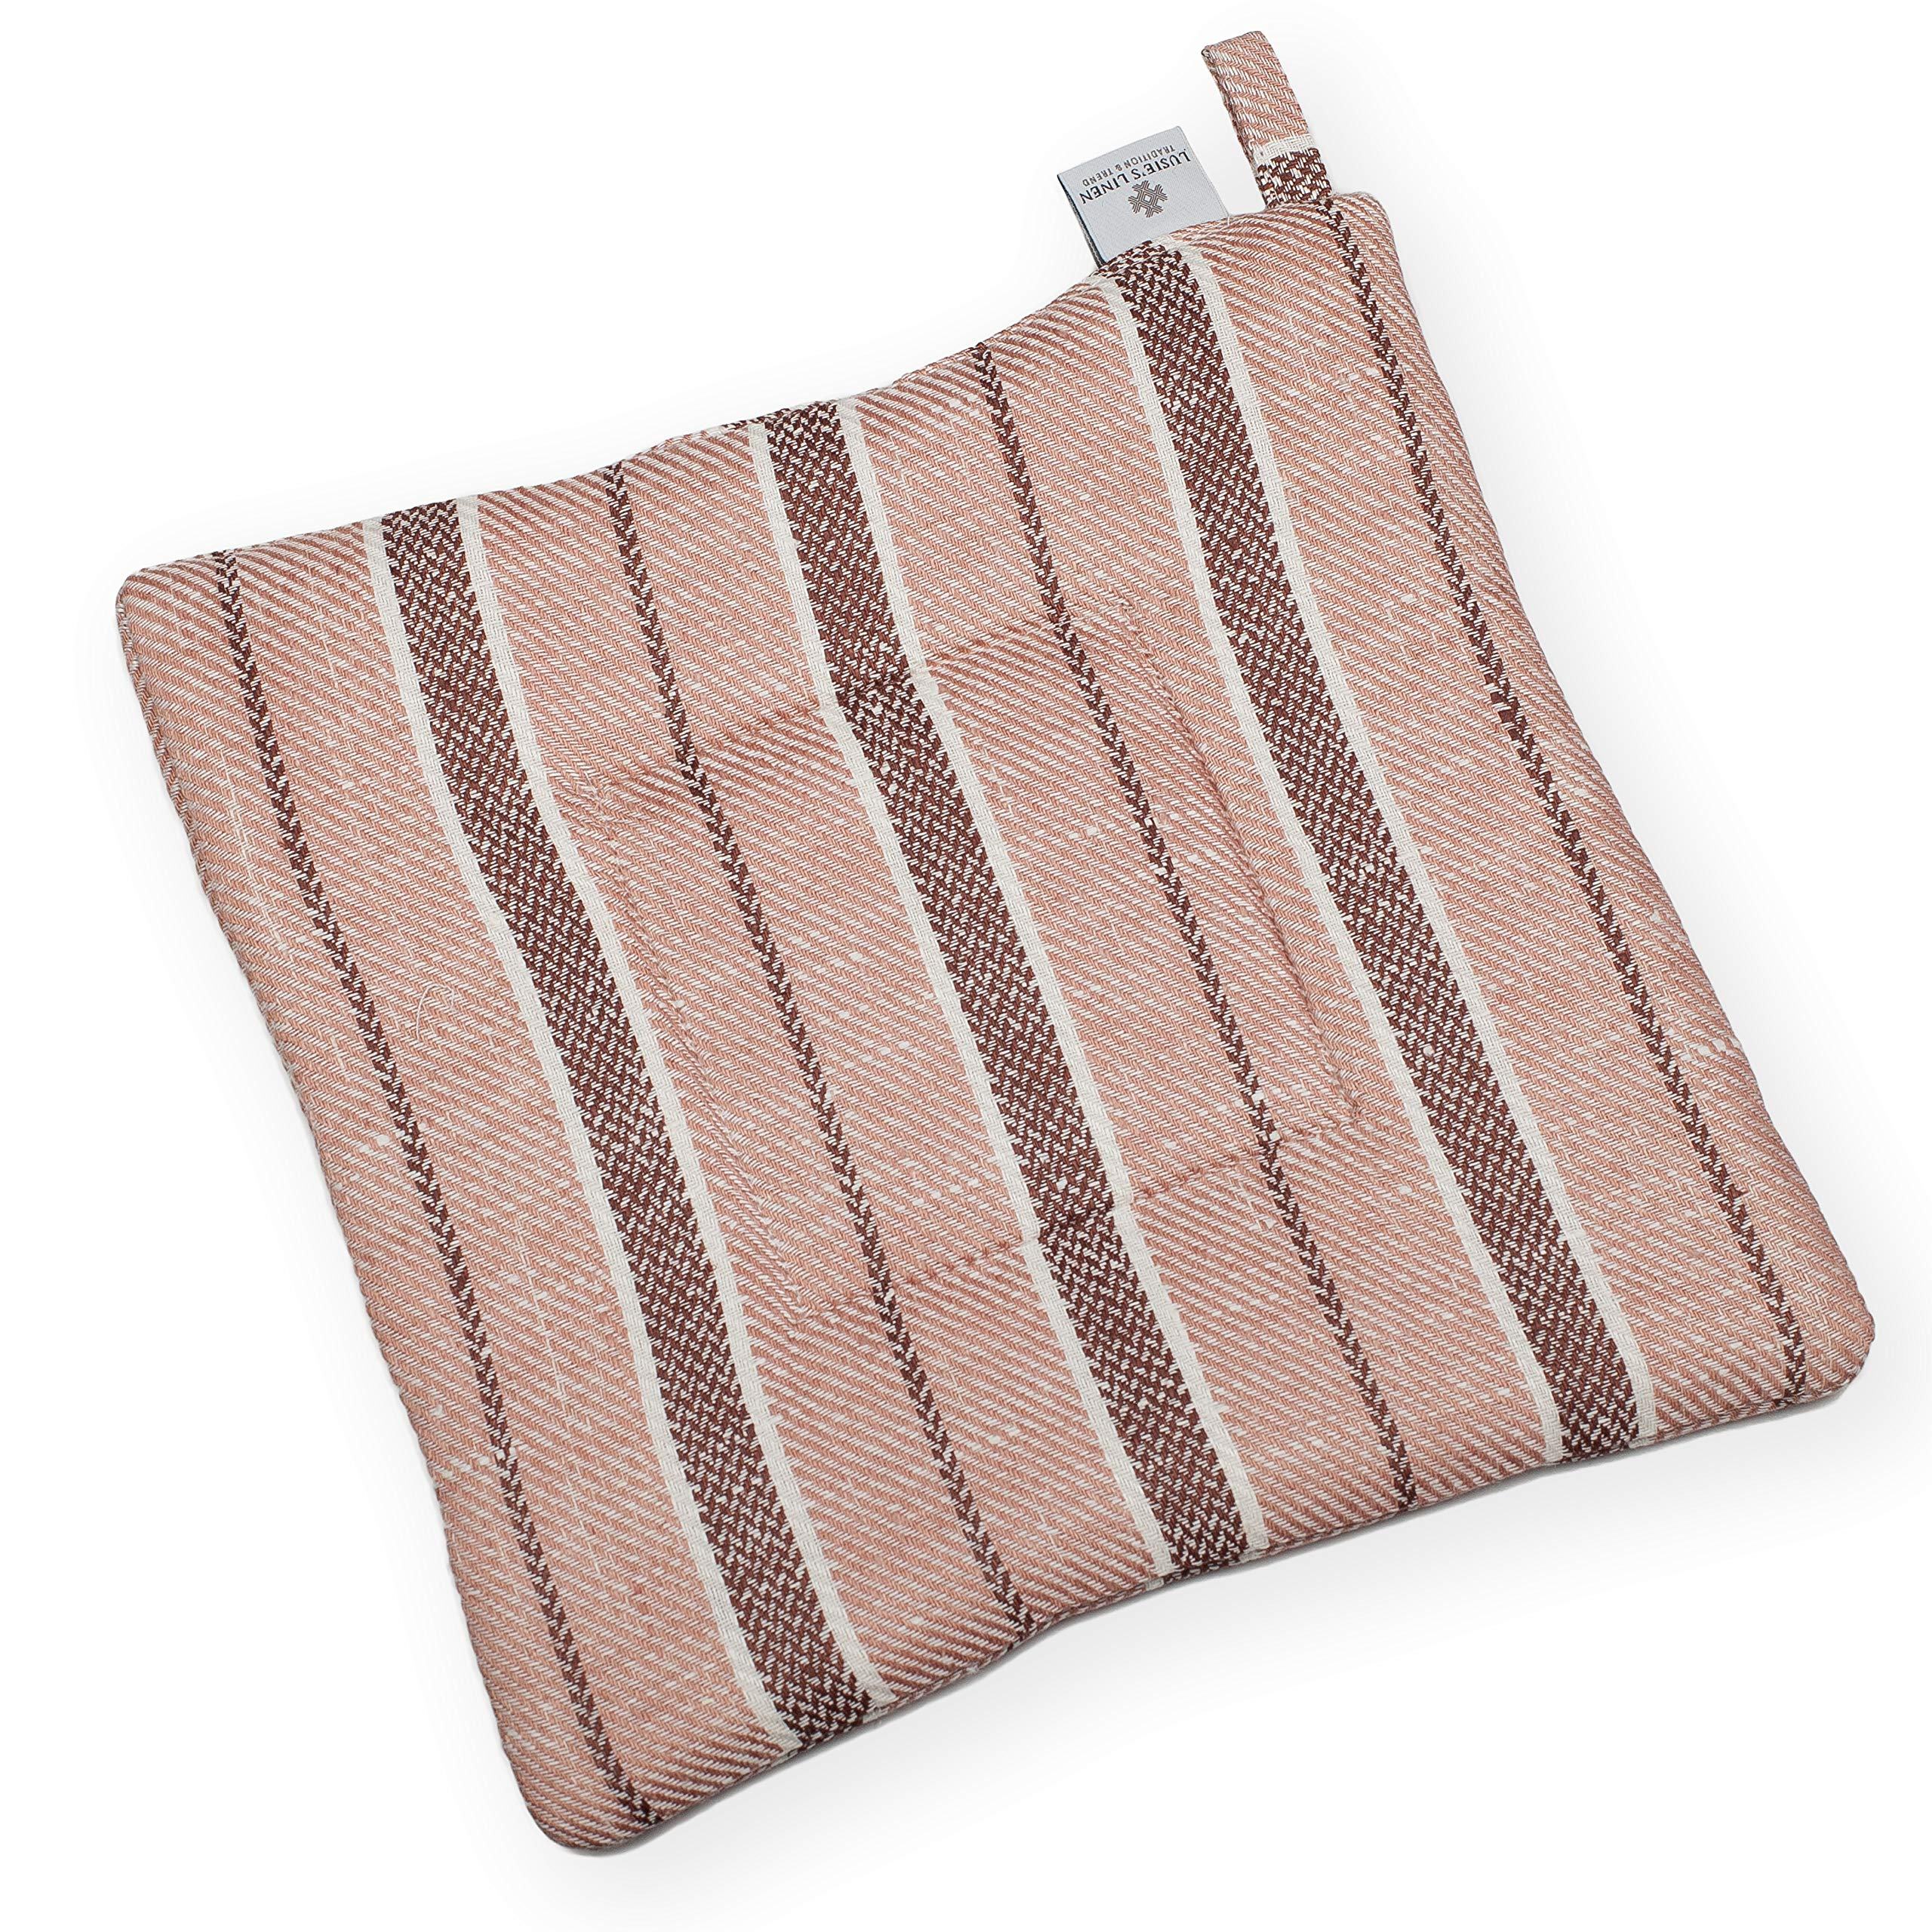 Pot Holder - Linen/Cotton Woven Fabric - 9''x9'' - Light Brown - Striped